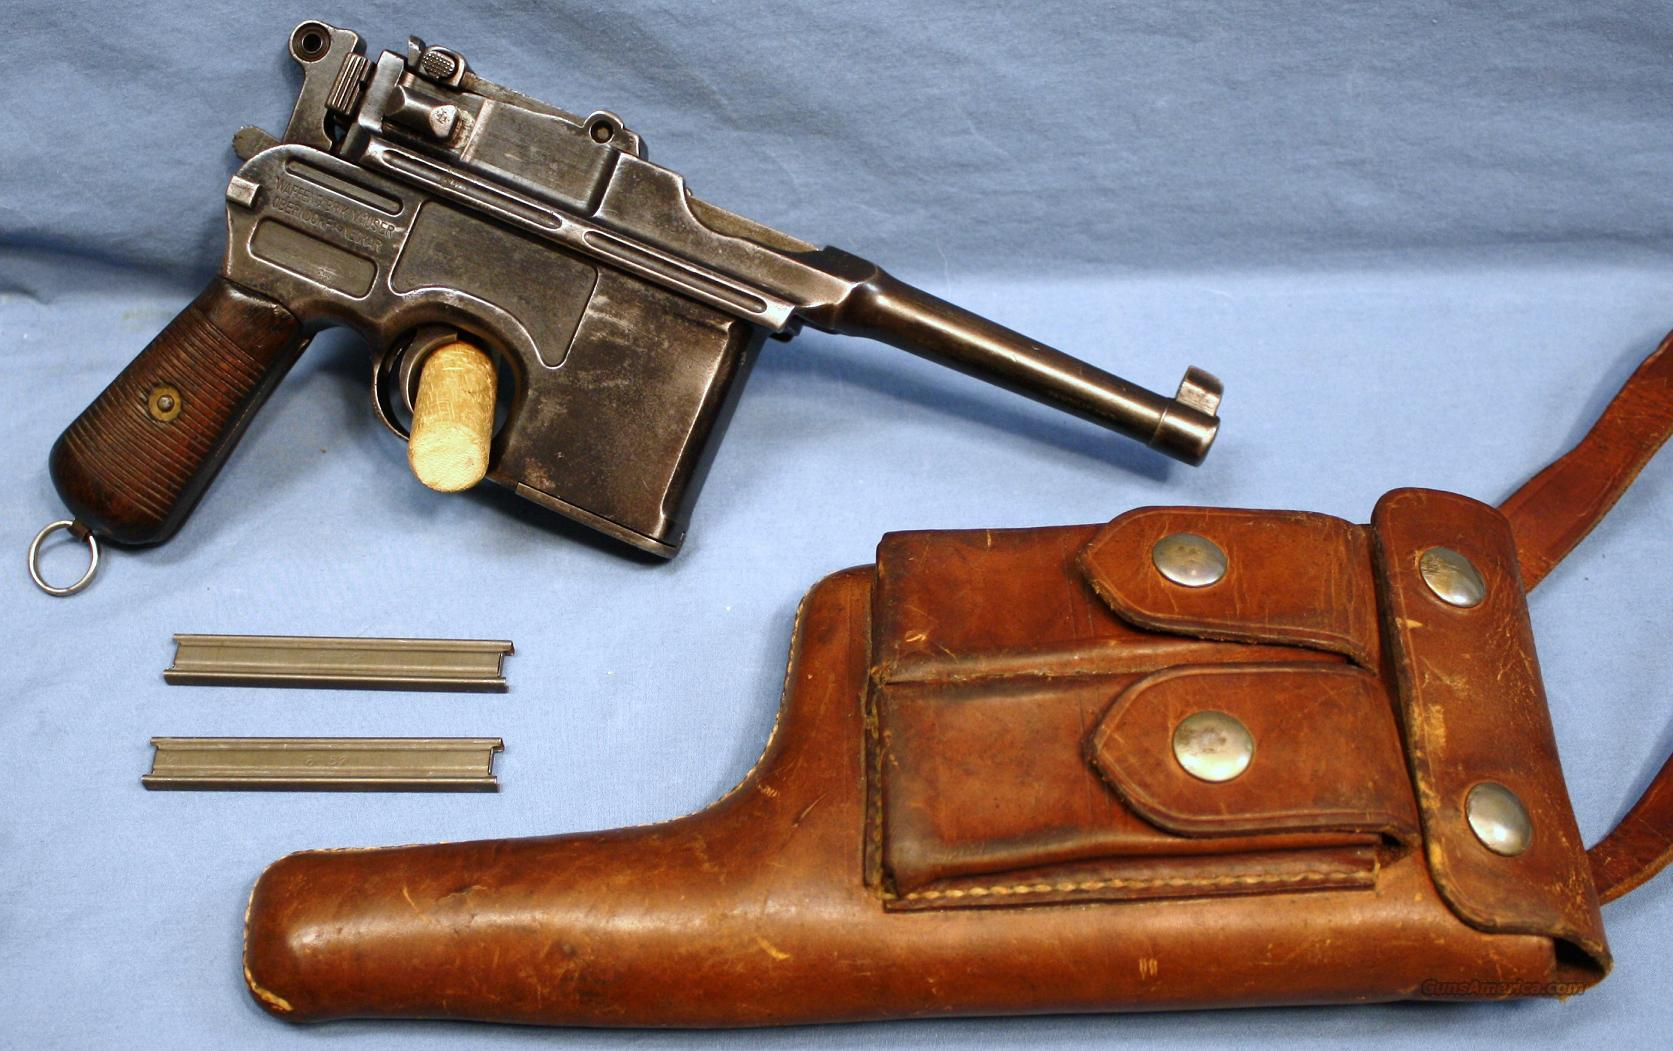 Mauser C96 Broomhandle Semi-Automatic Bolo Model Pistol 9mm With Holster  Guns > Pistols > Mauser Pistols